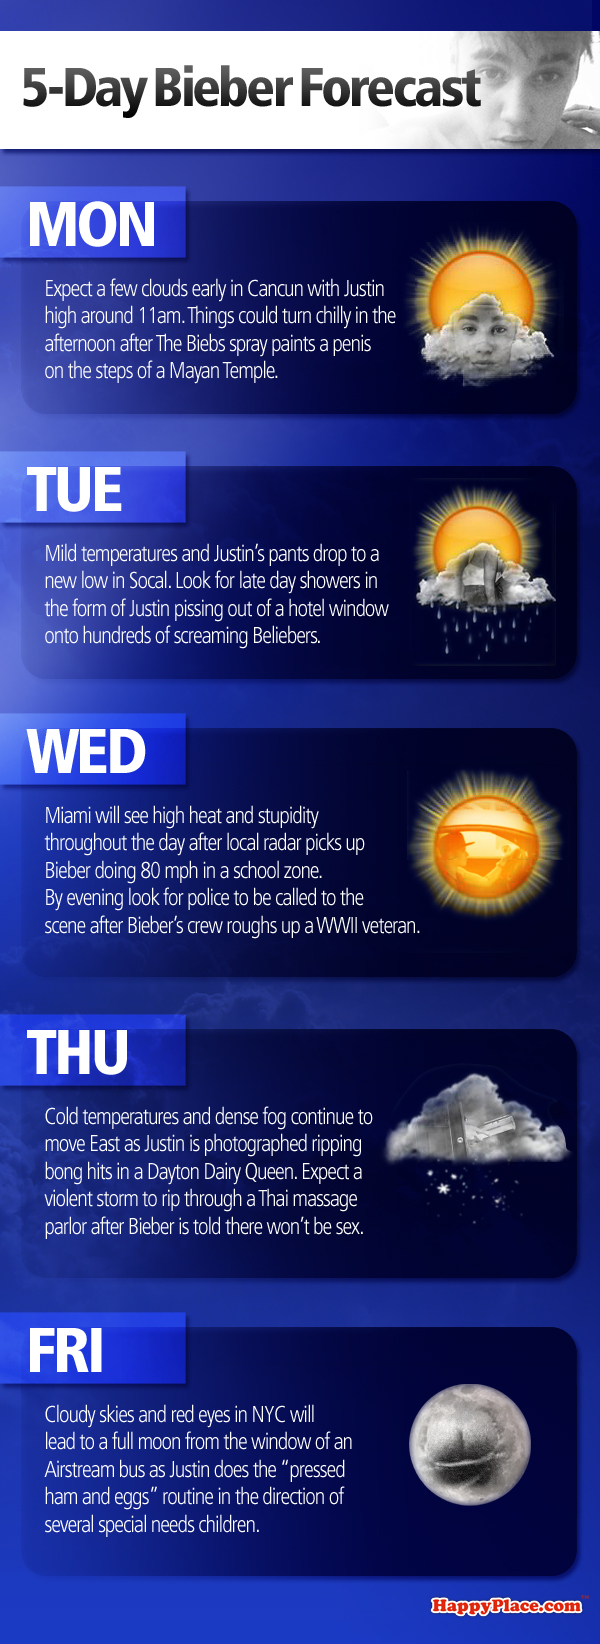 Your 5-Day Bieber Forecast - What you can expect from Justin Bieber for the week.